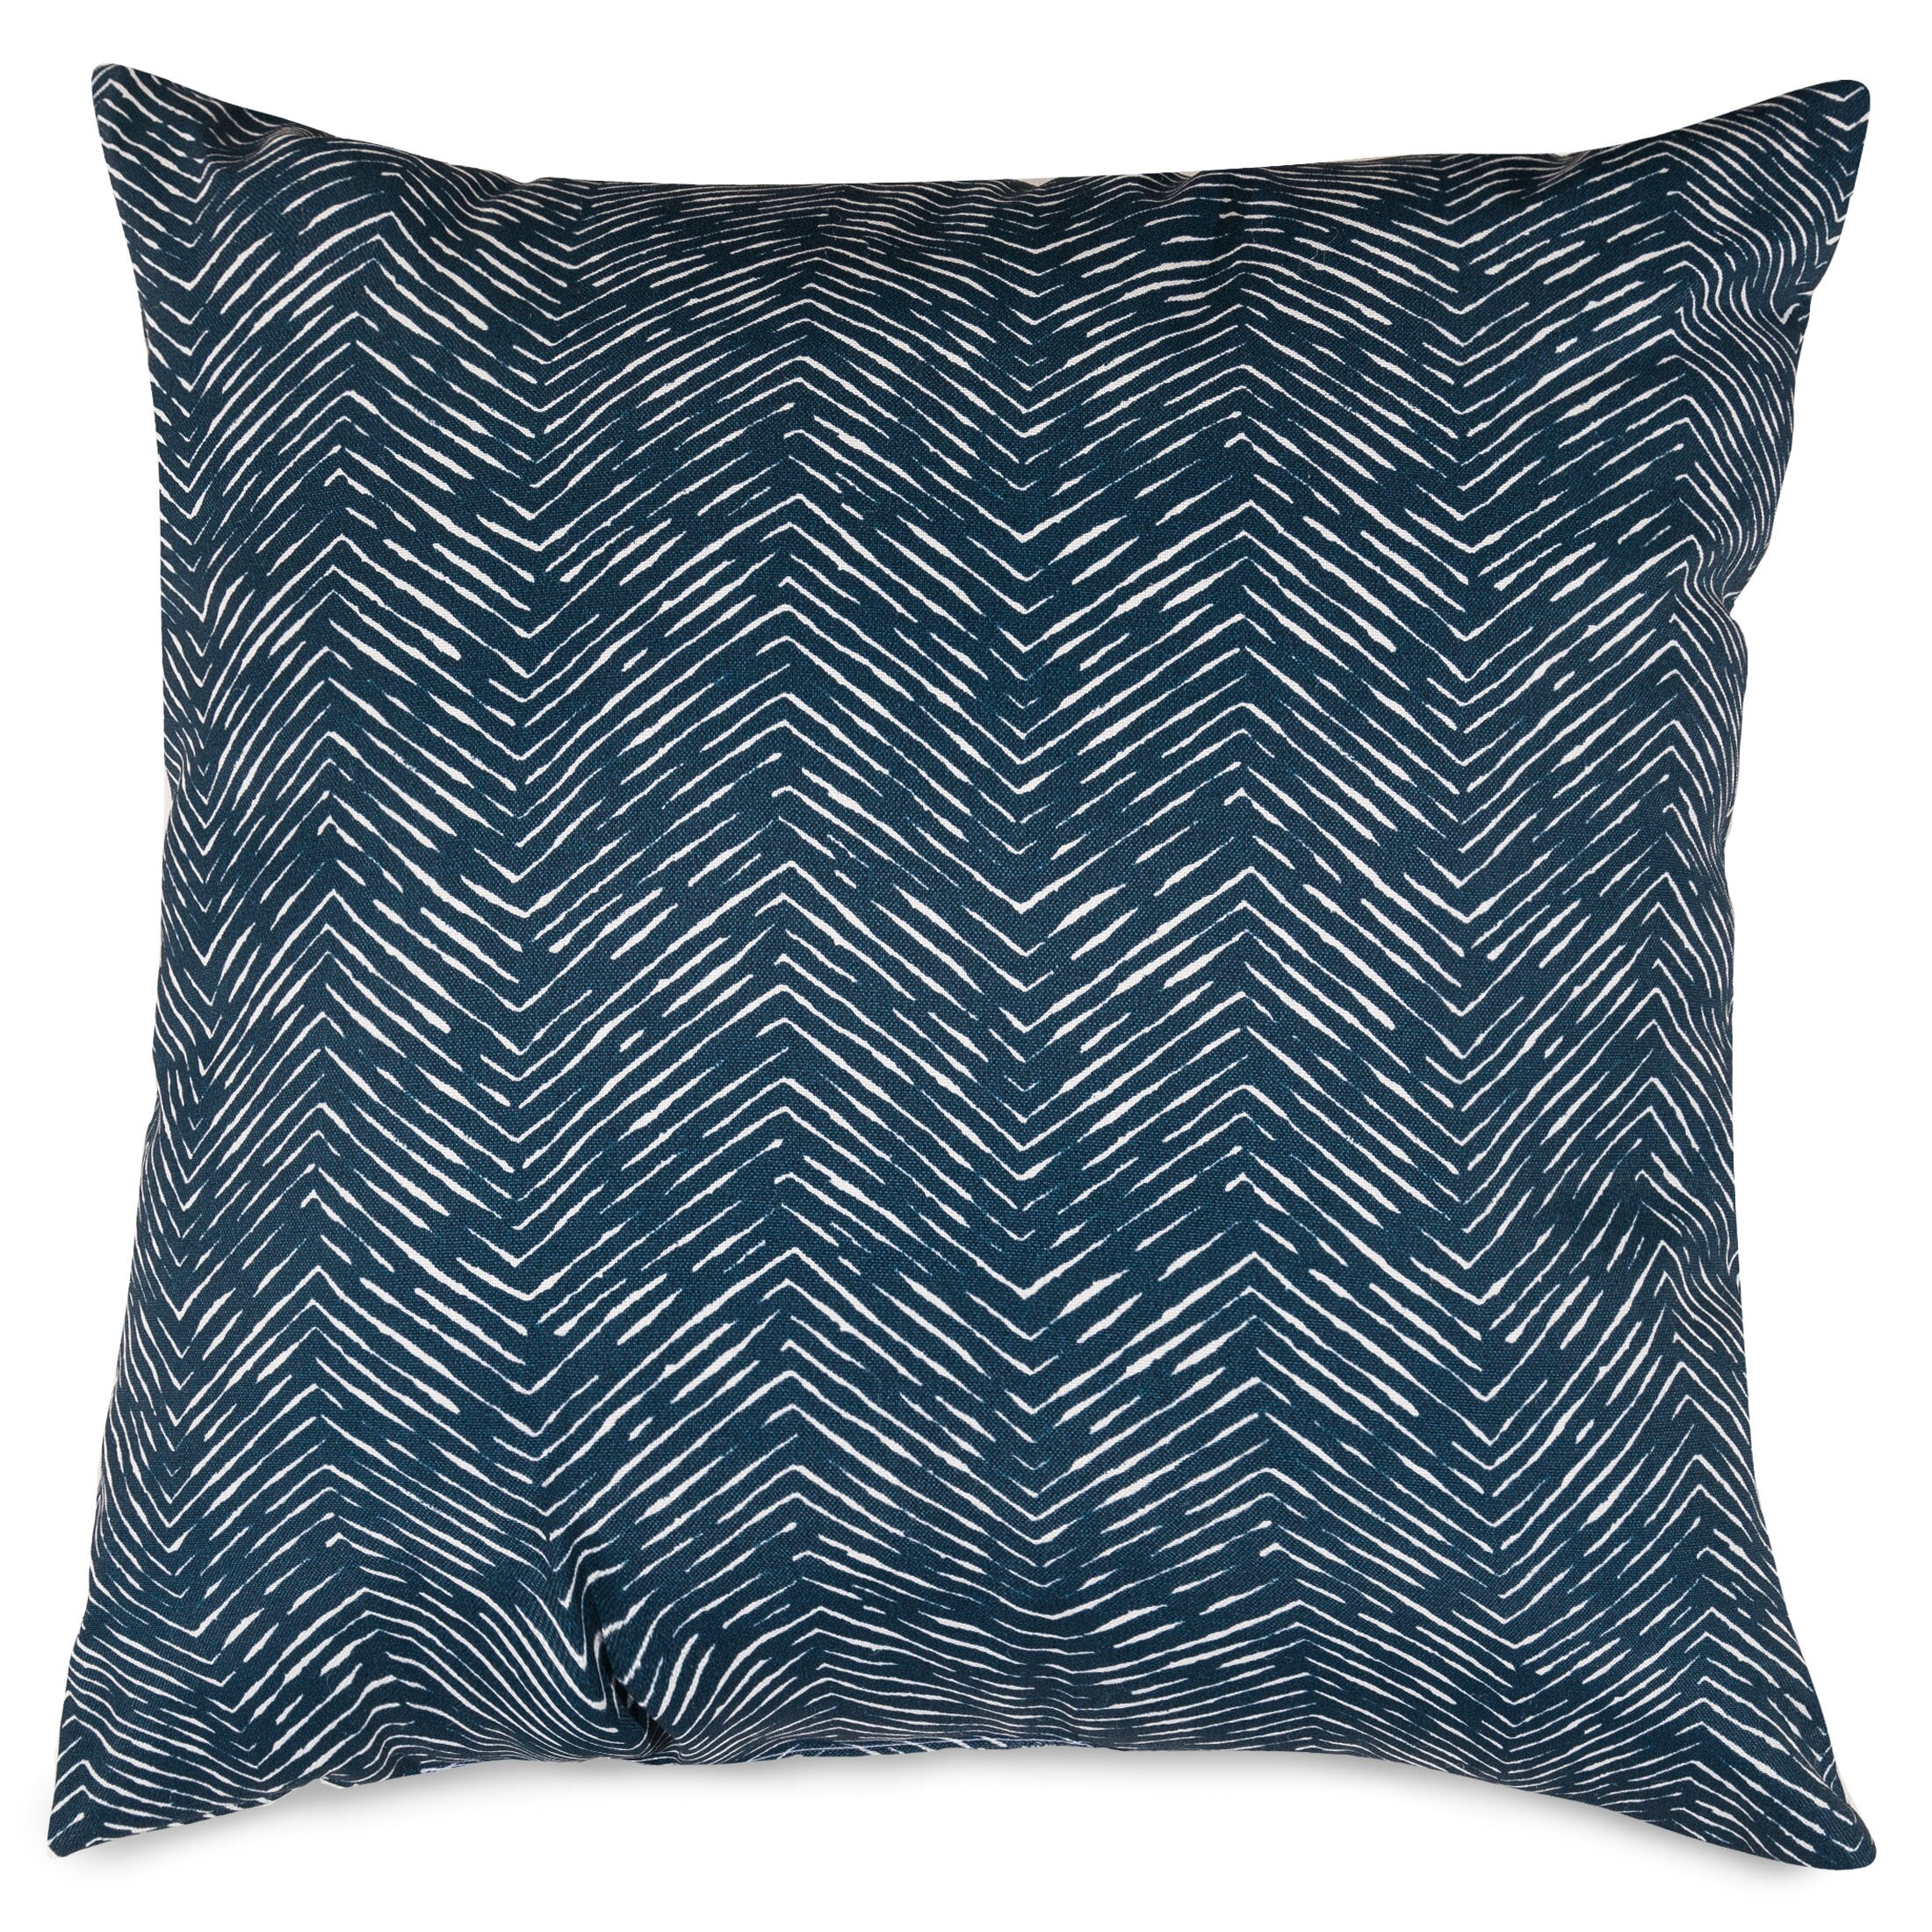 Majestic Home Goods Navajo Indoor/Outdoor Throw Pillow & Reviews Wayfair